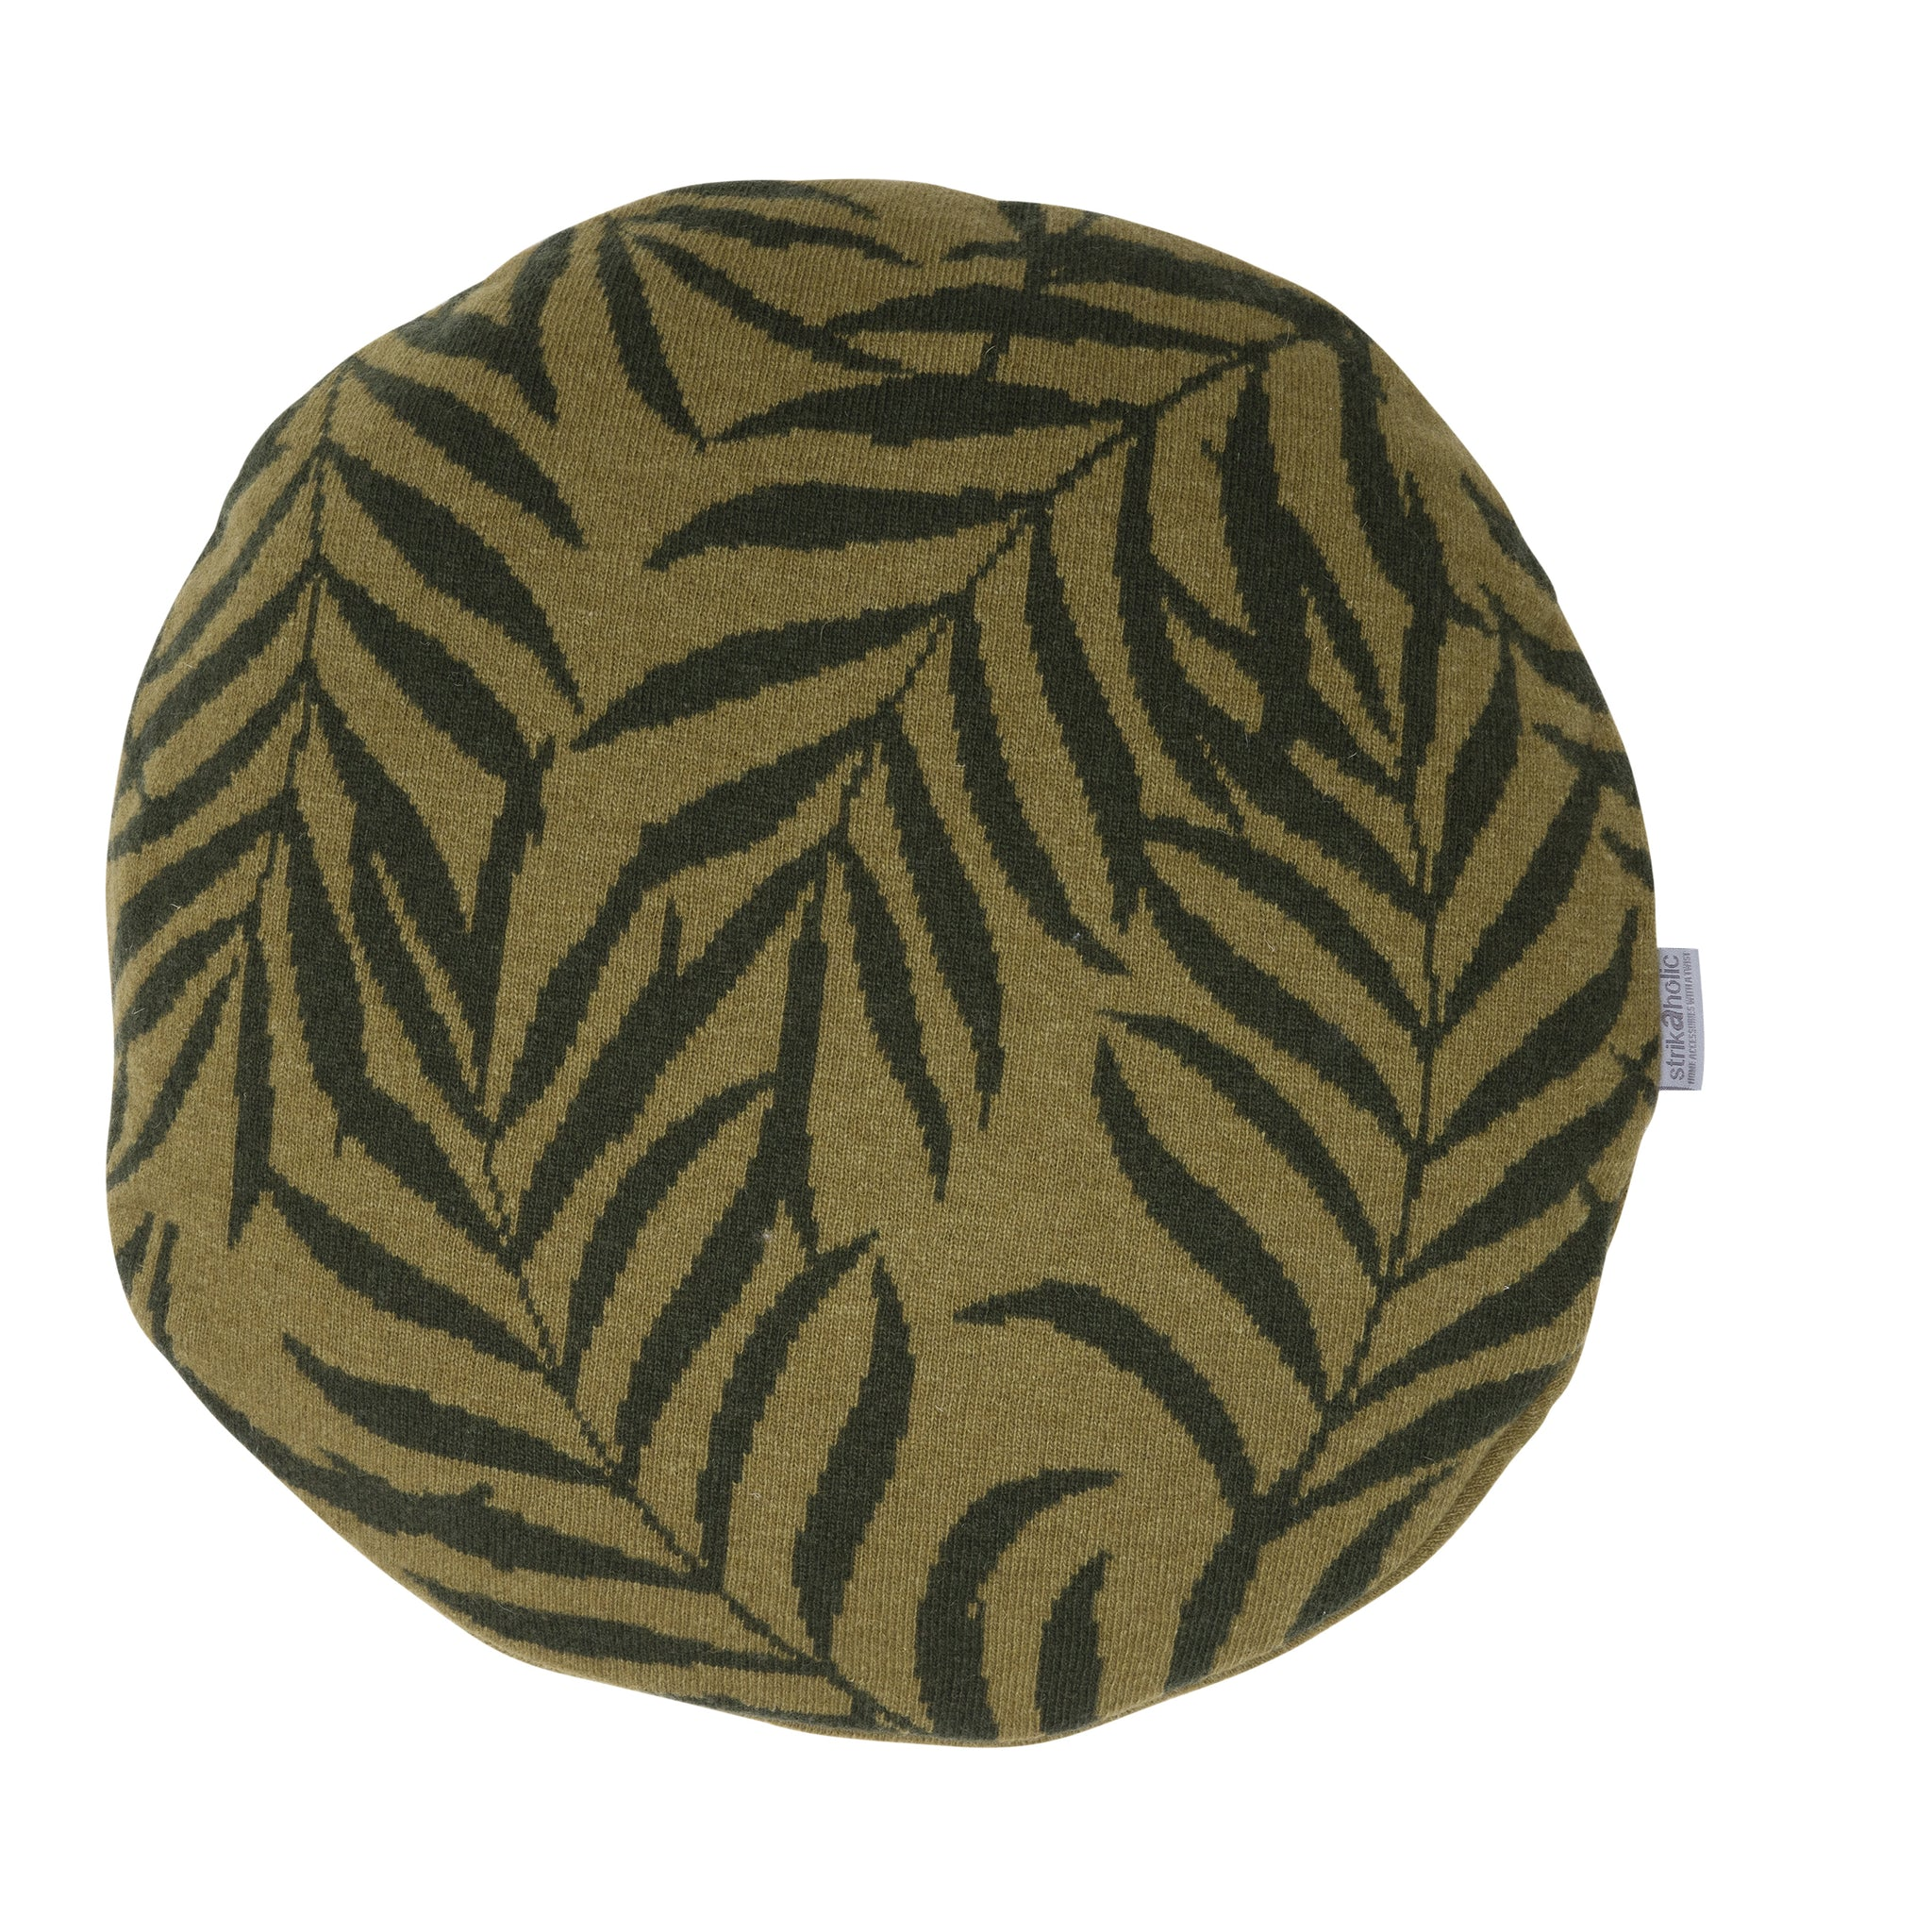 Leaf cushion 2C, green